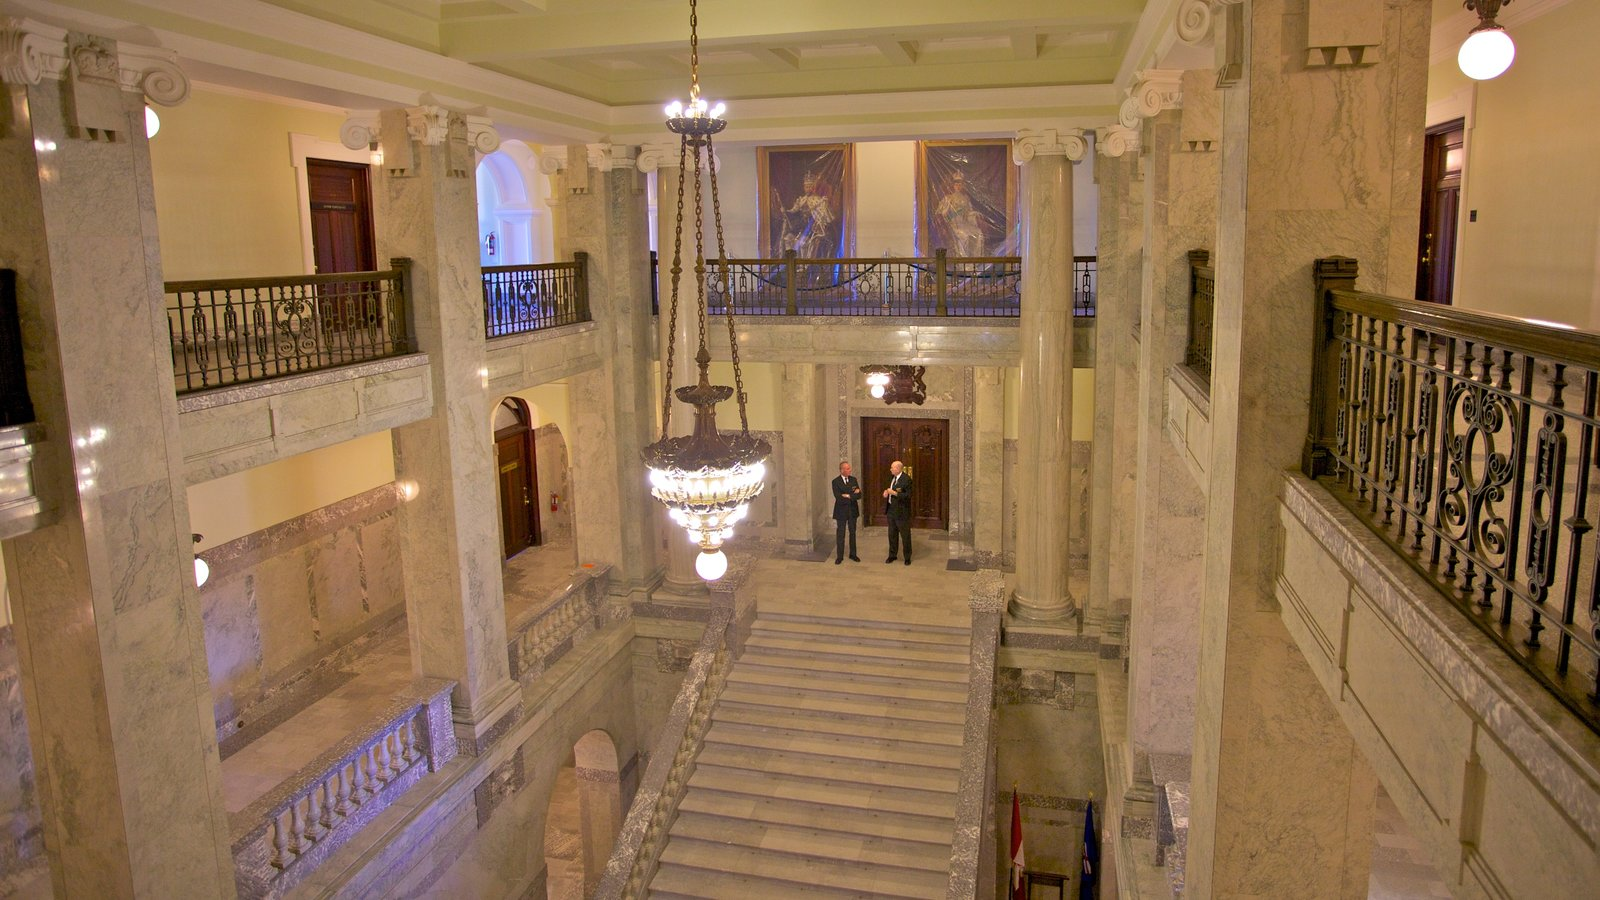 Alberta Legislature Building showing heritage architecture, an administrative building and interior views